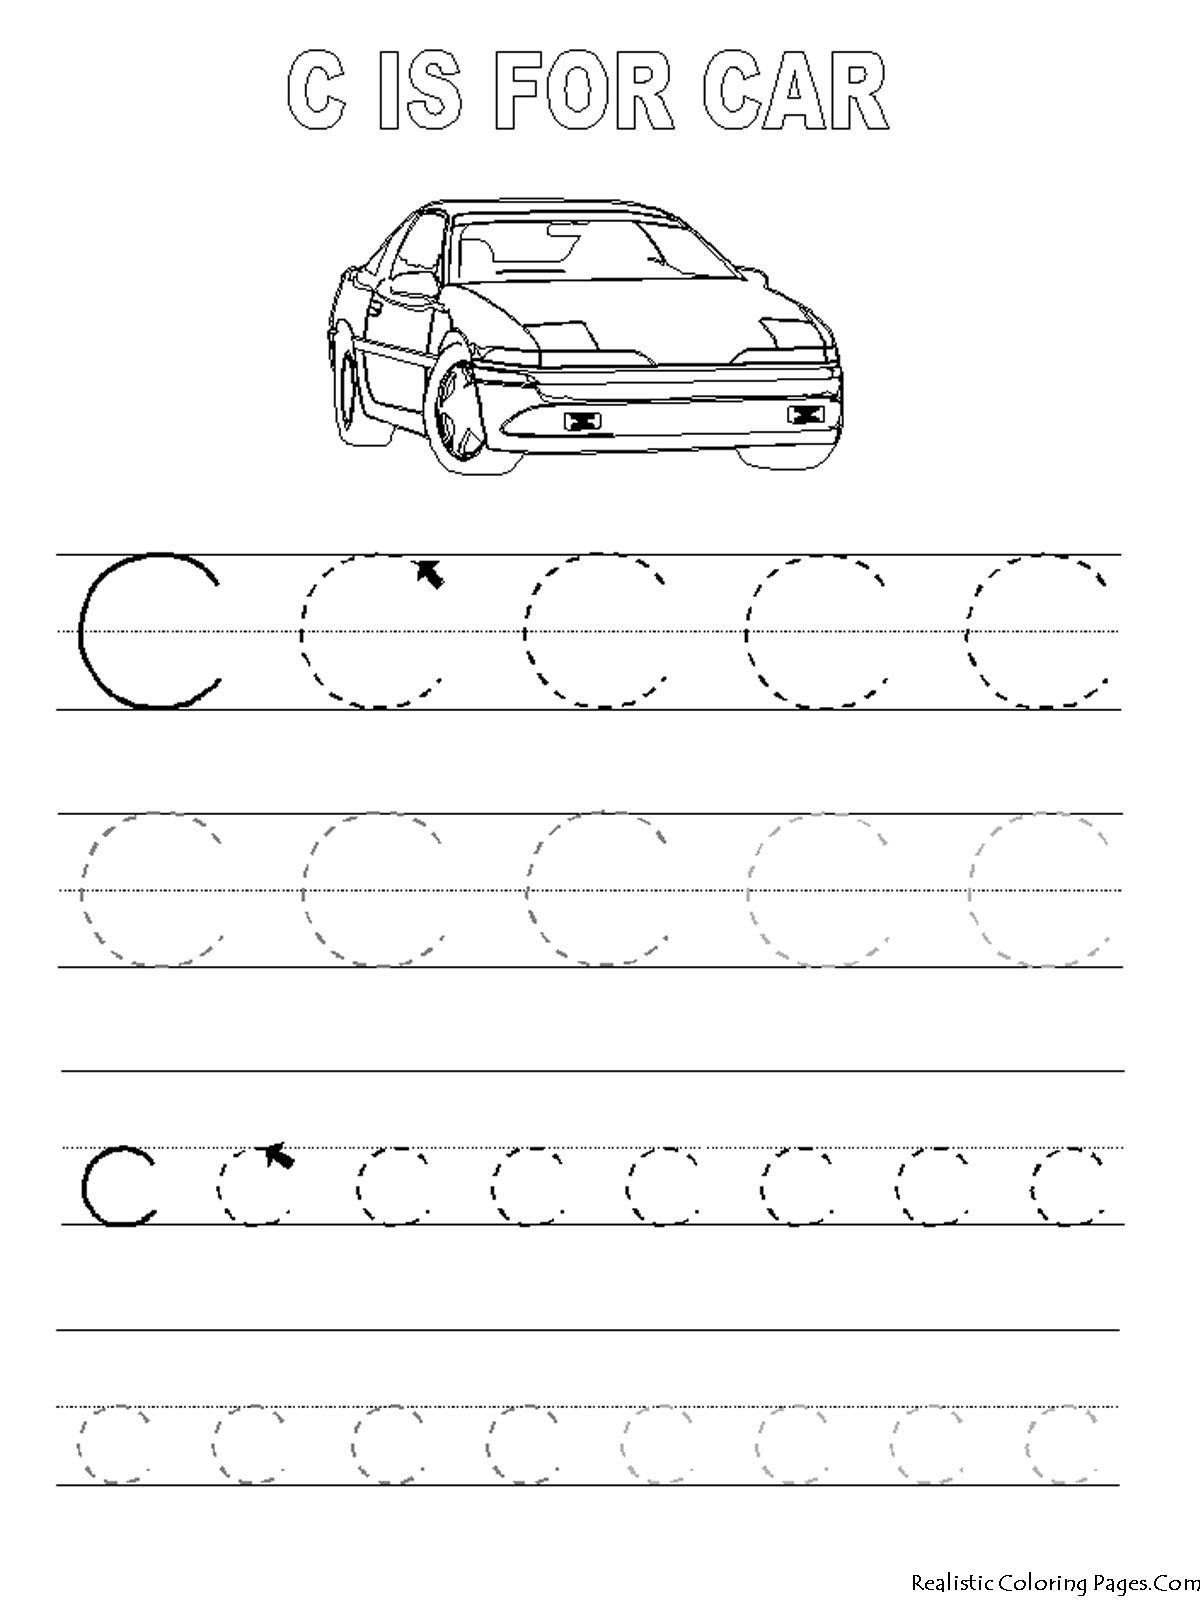 Alphabet Tracer Pages C Car | Coloring Pages | Pinterest